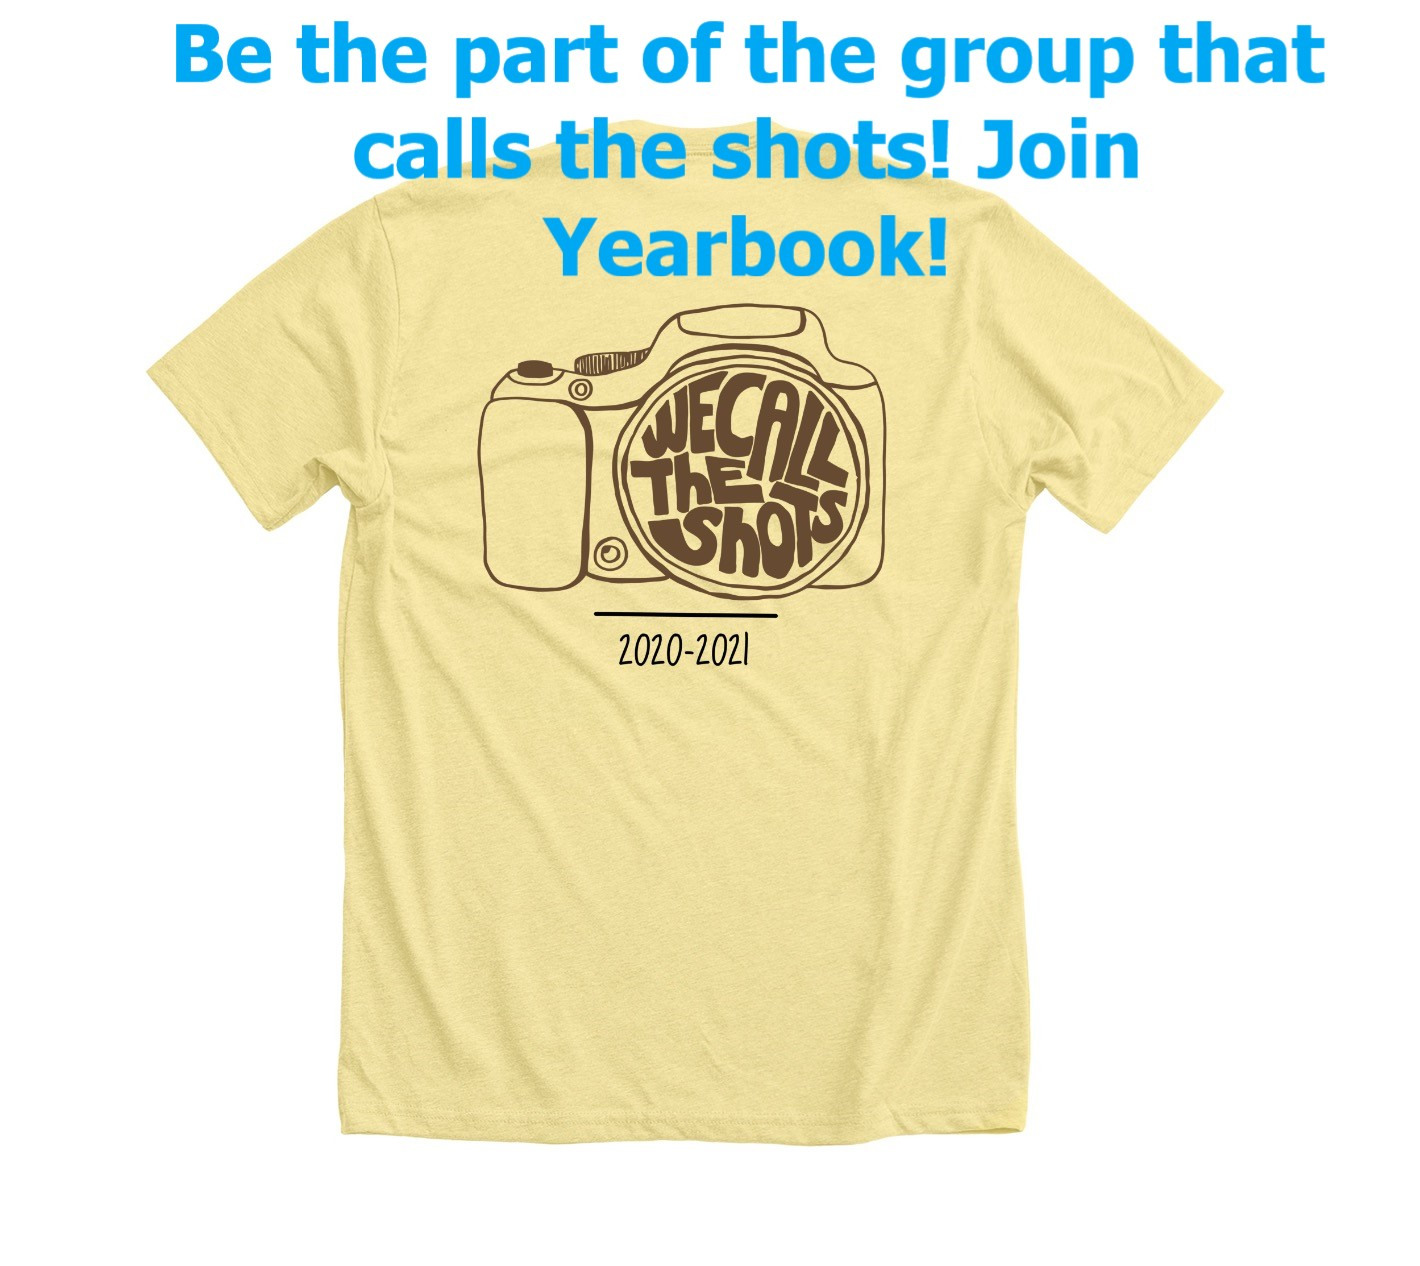 Join Yearbook